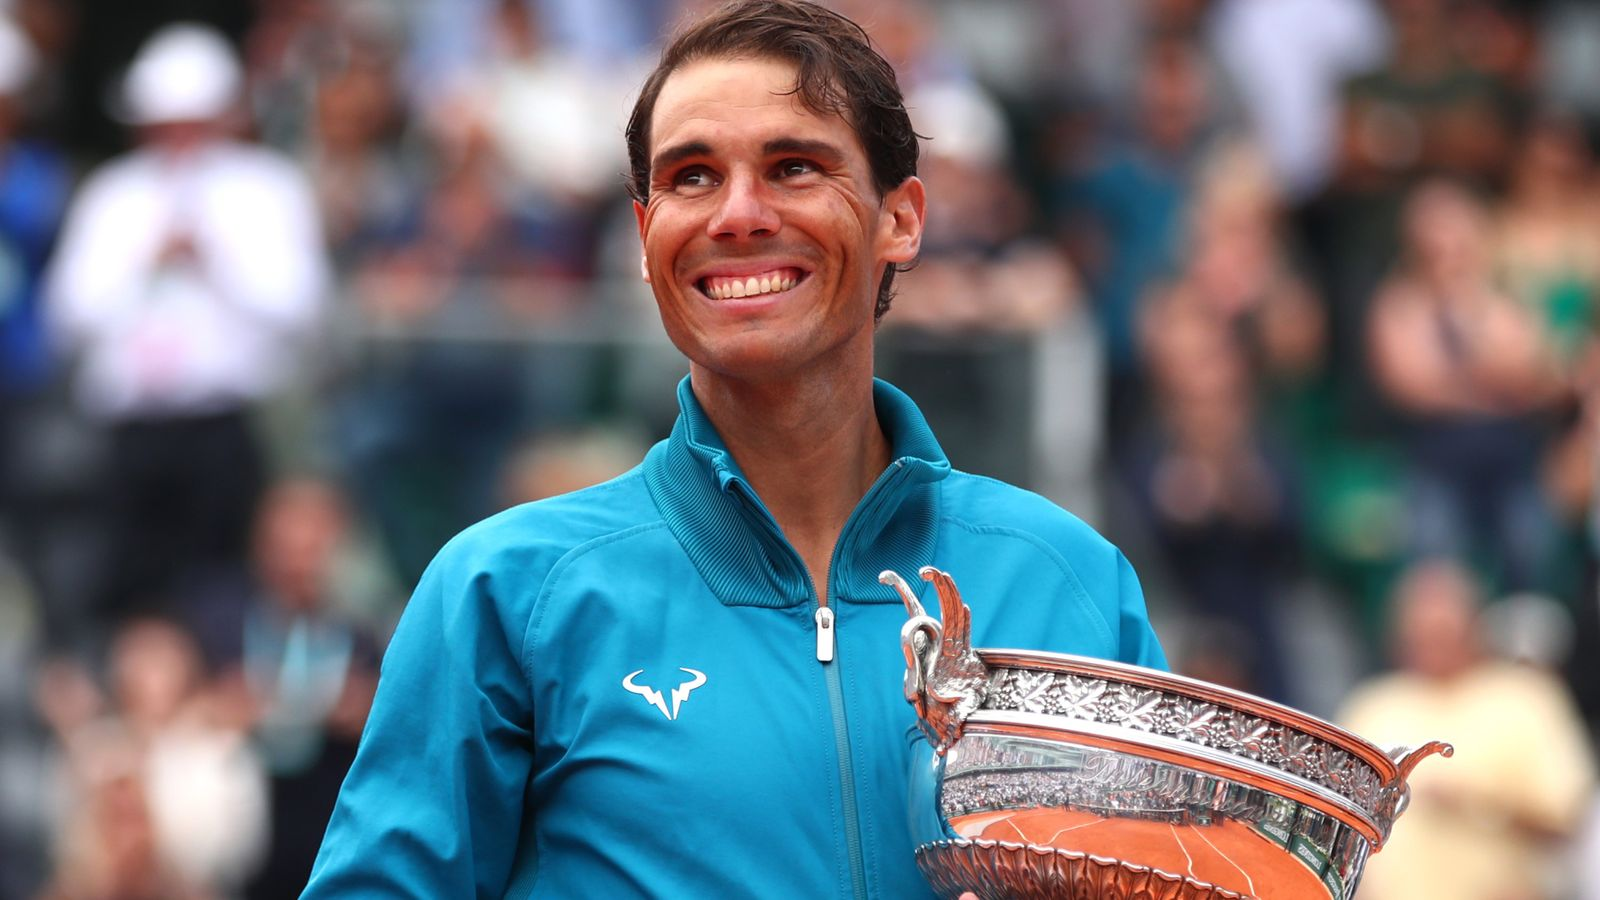 Rafael Nadal Remains Favourite For French Open According